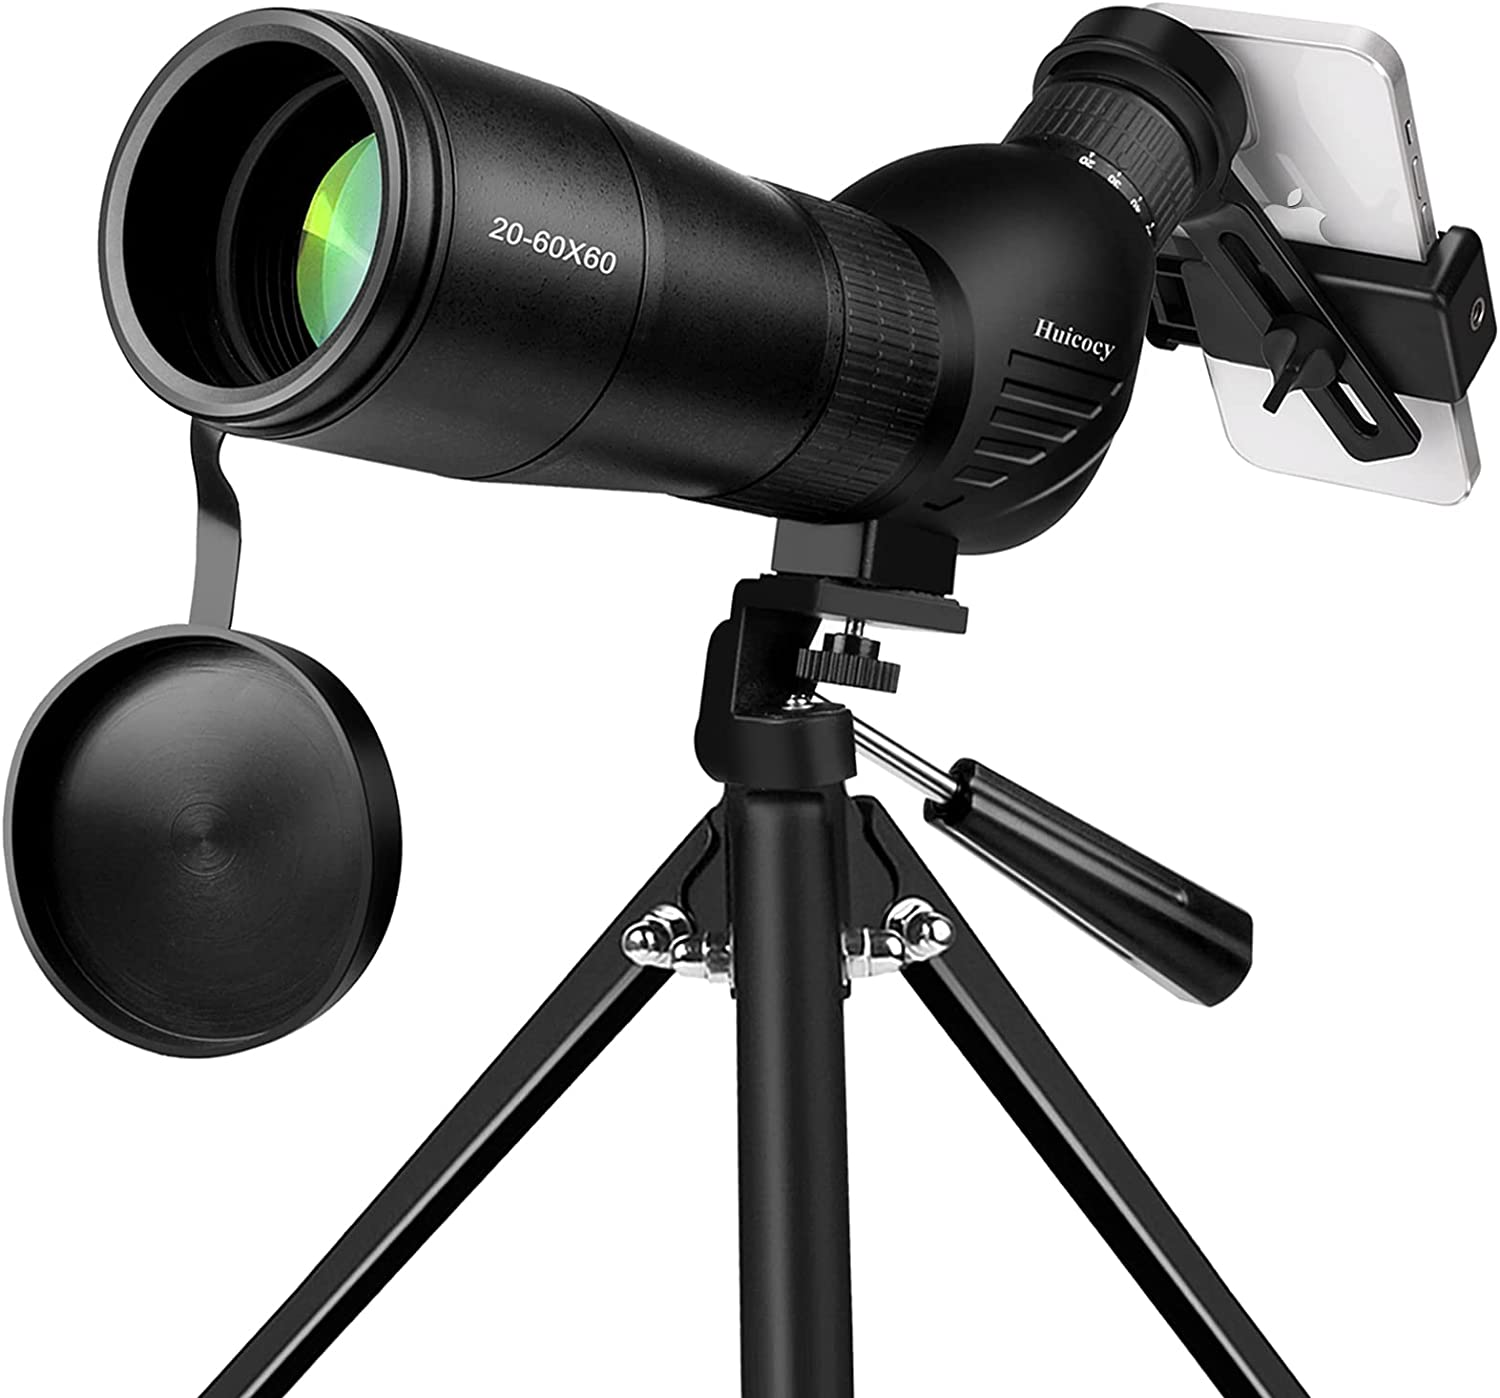 Top 9 Best Spotting Scopes For Wildlife Viewing [Buying Guide - 2021] 6